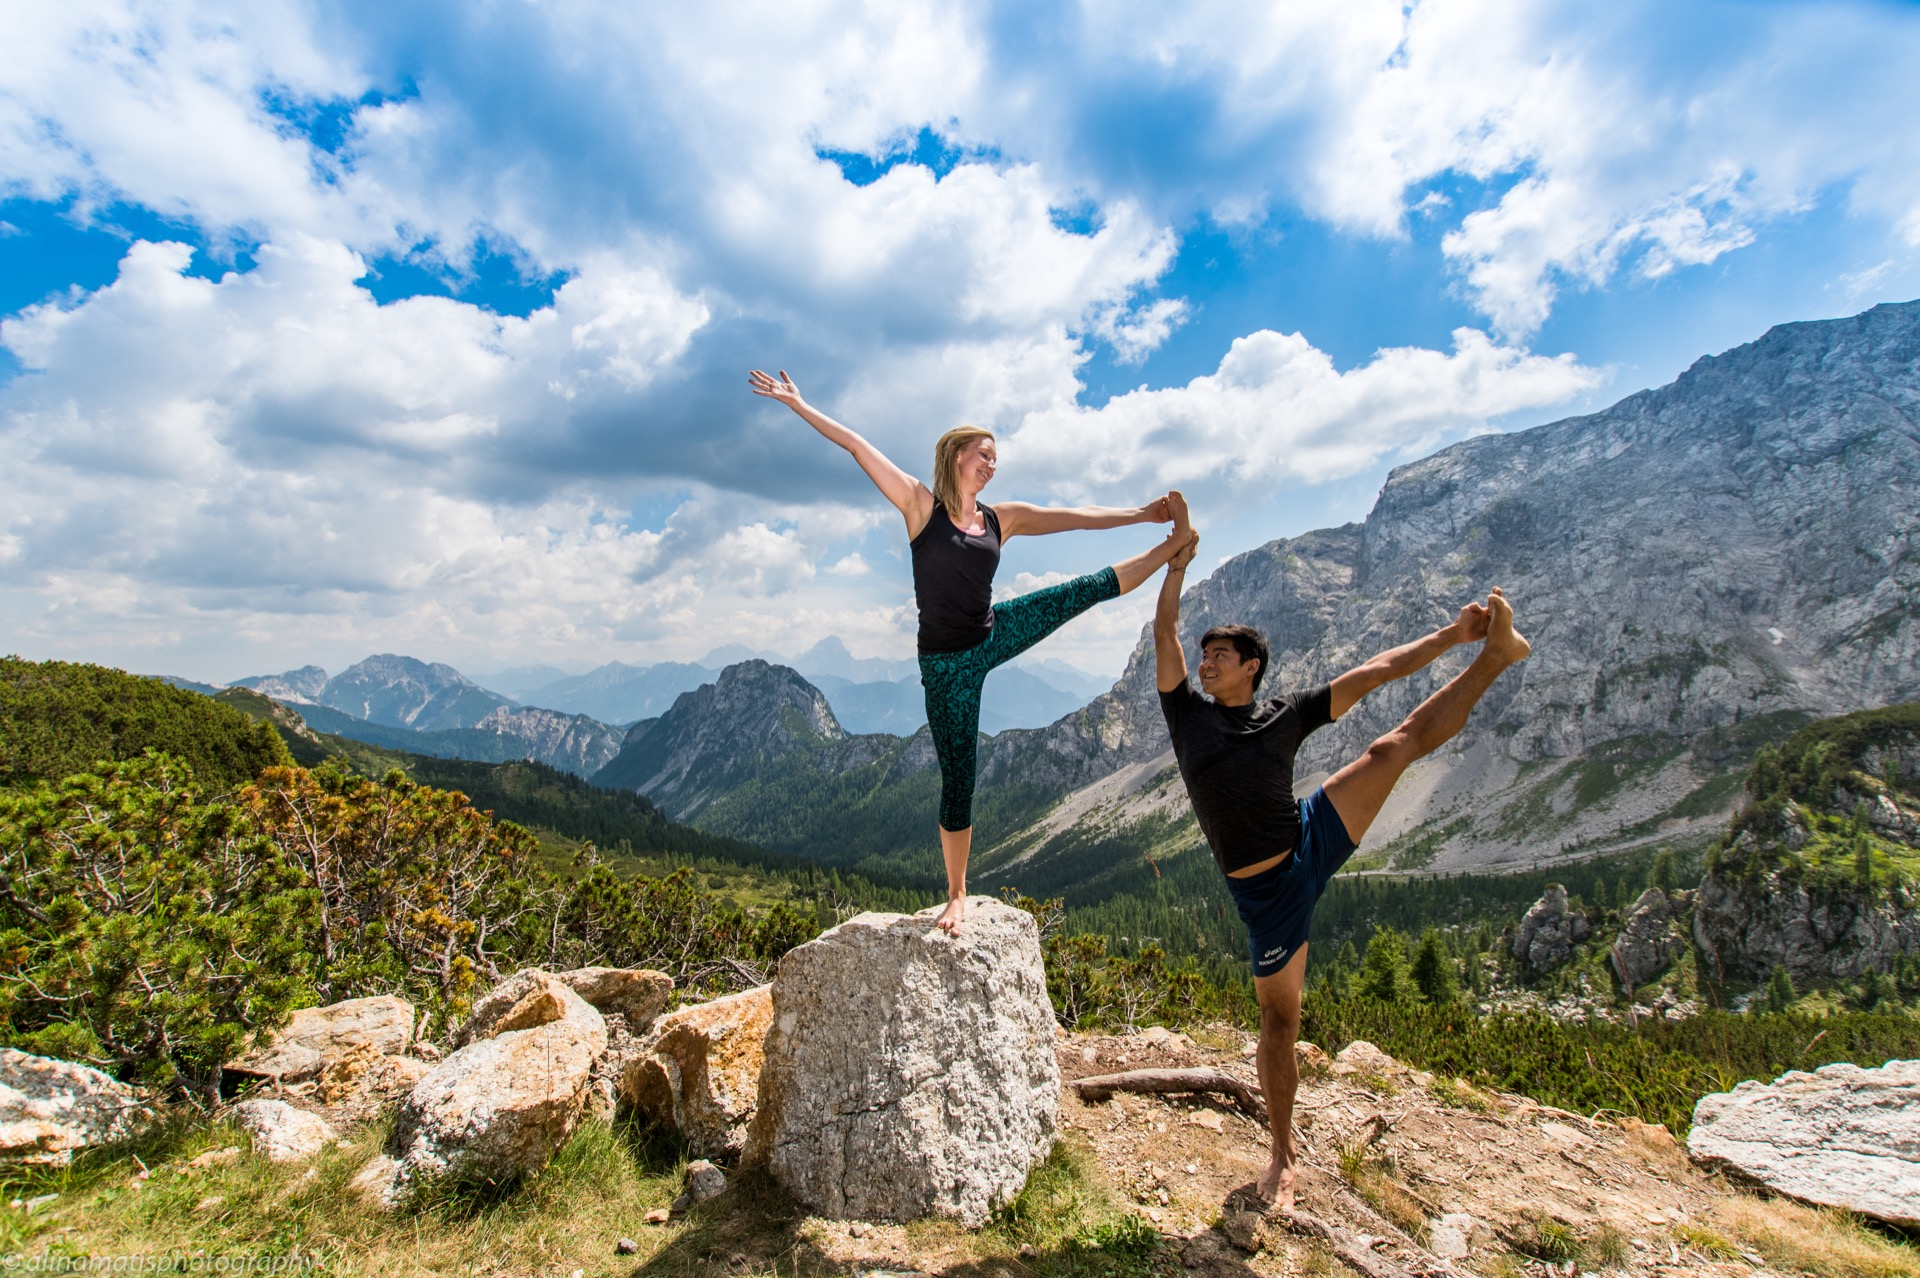 Hie-Kim-Friends-2018-Yoga-Retreat-Alina-Matis-Photography-158 - Hie Kim Yoga - Yoga Retreat - Yoga Workshops und Reisen